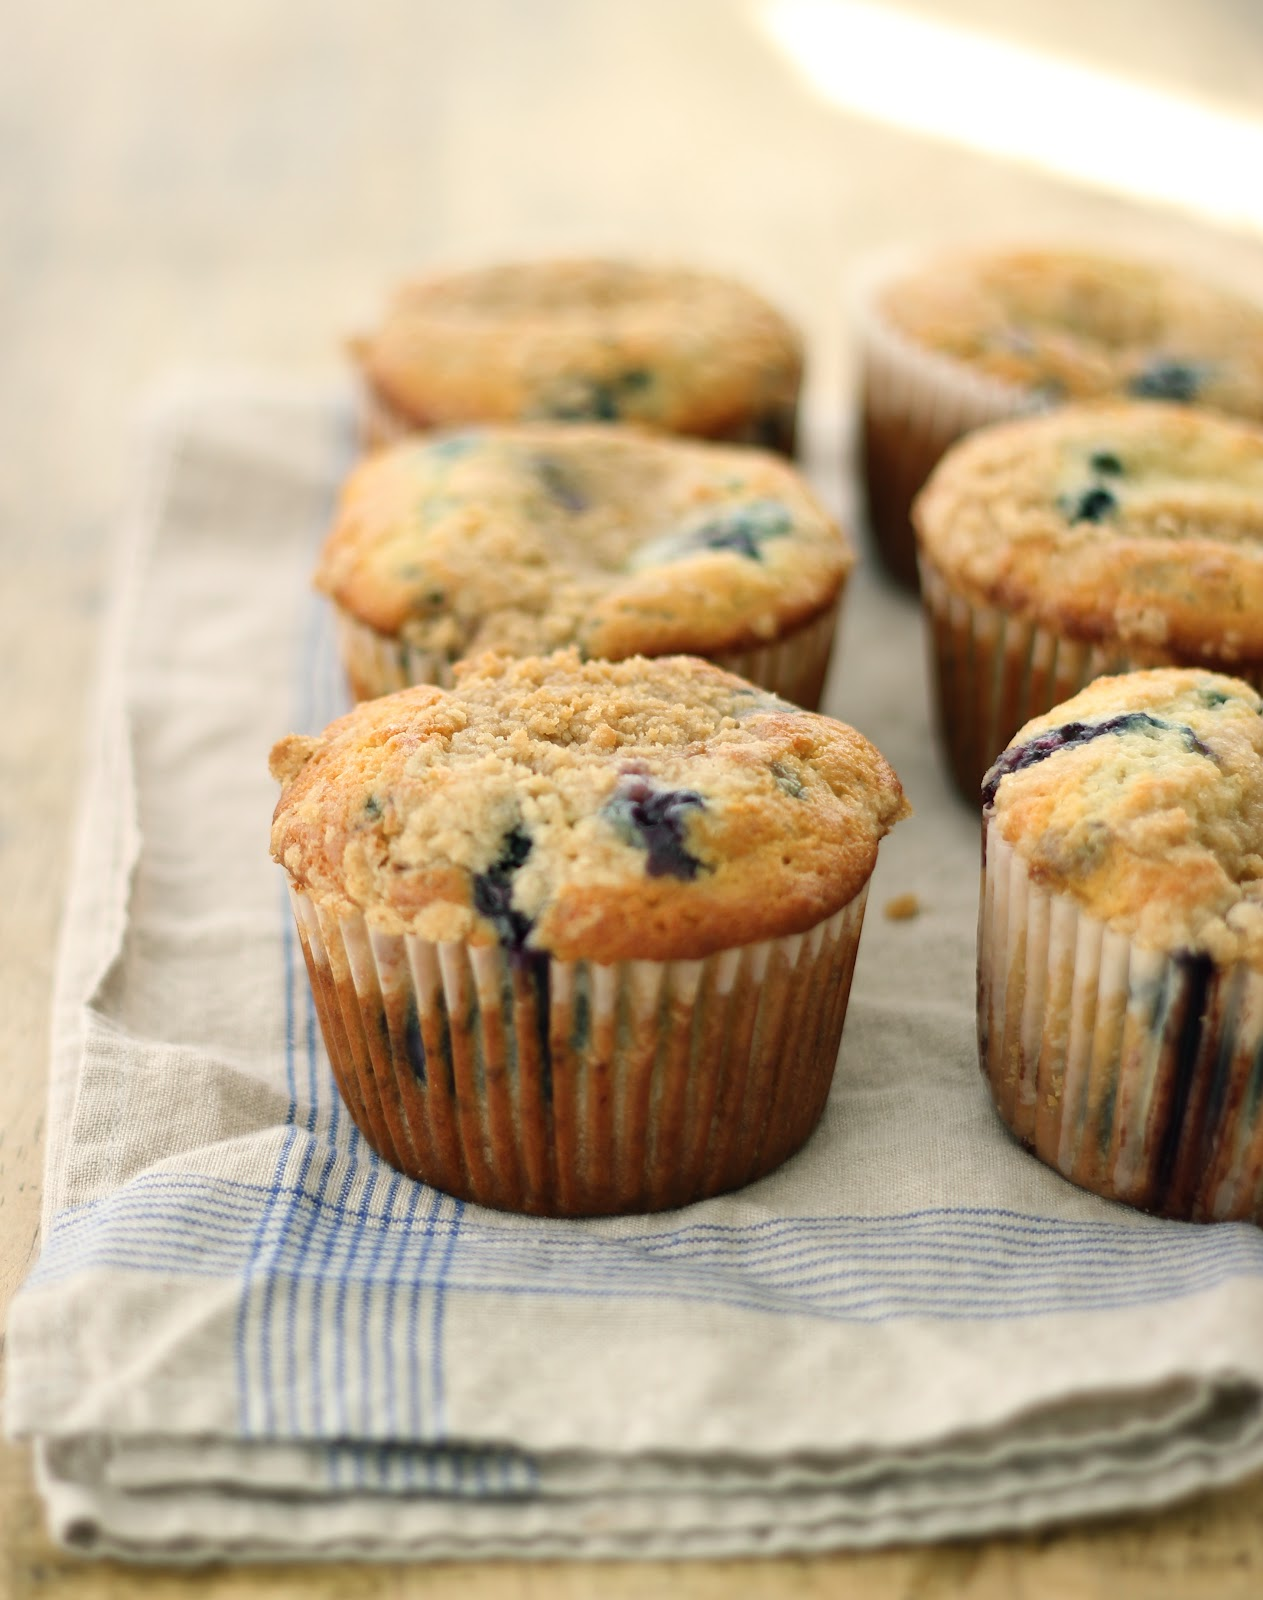 Jenny Steffens Hobick: Blueberry Crumble Muffins | What you'll be ...